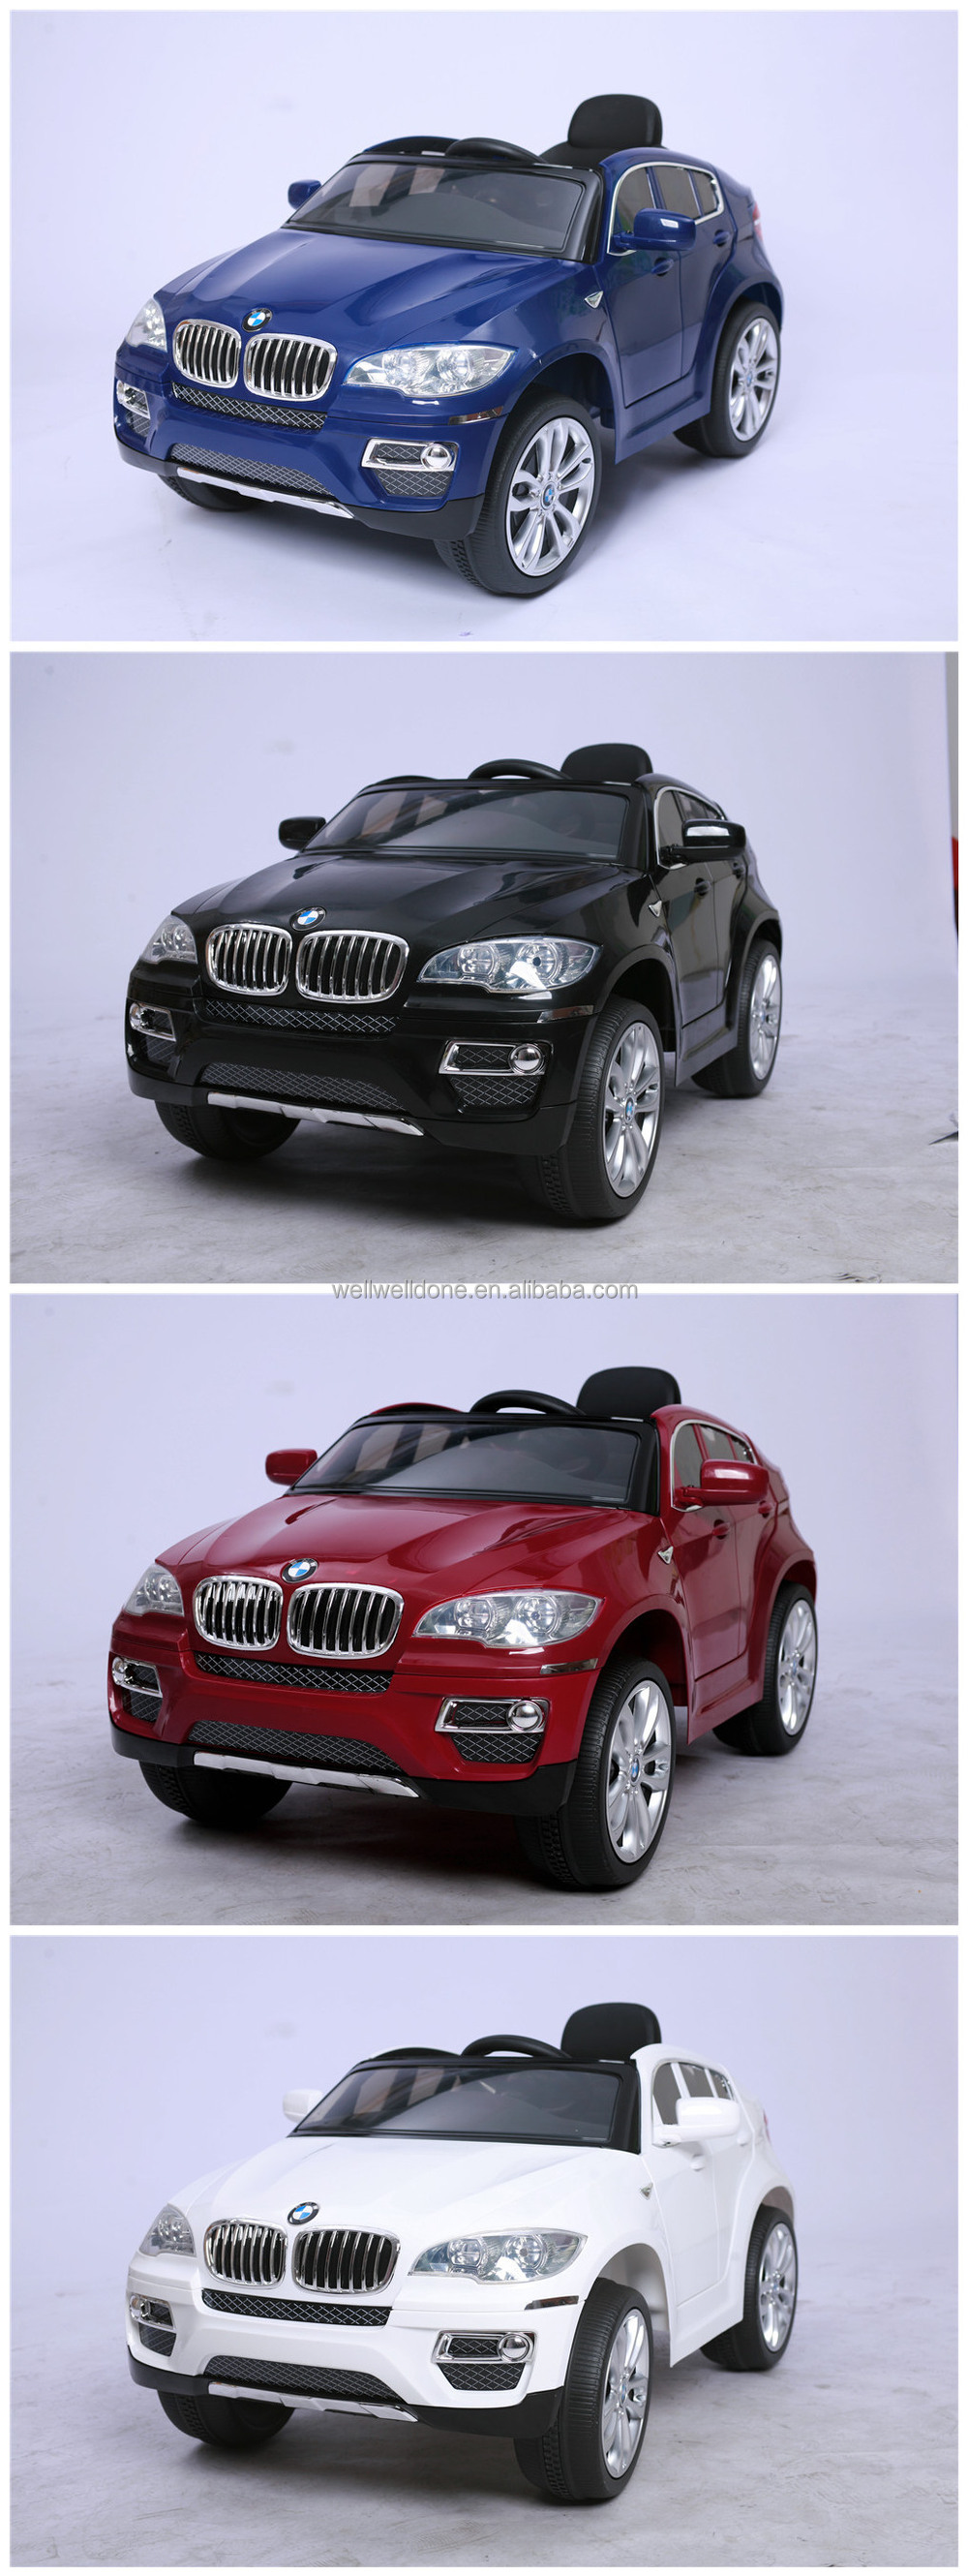 licensed car bmw x6 kids electric car with remote control baby present ride on toy